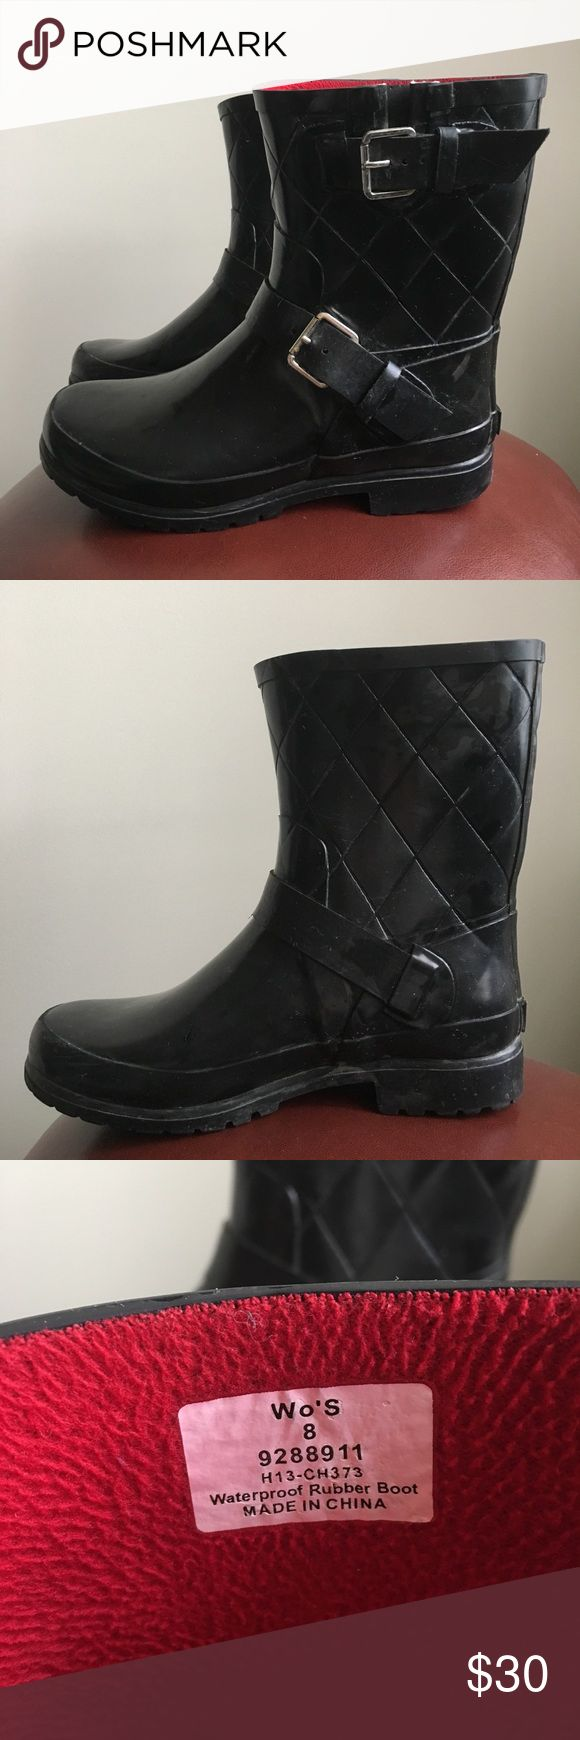 🎉SALE🎉 Sperry Waterproof Short Falcon Rainboots Super stylish! Good condition, but some cracks in the rubber along the outside (Not visible while wearing - only when you pull the rubber apart). Black with red lining on the inside, size 8. Feel free to make an offer! Sperry Top-Sider Shoes Winter & Rain Boots